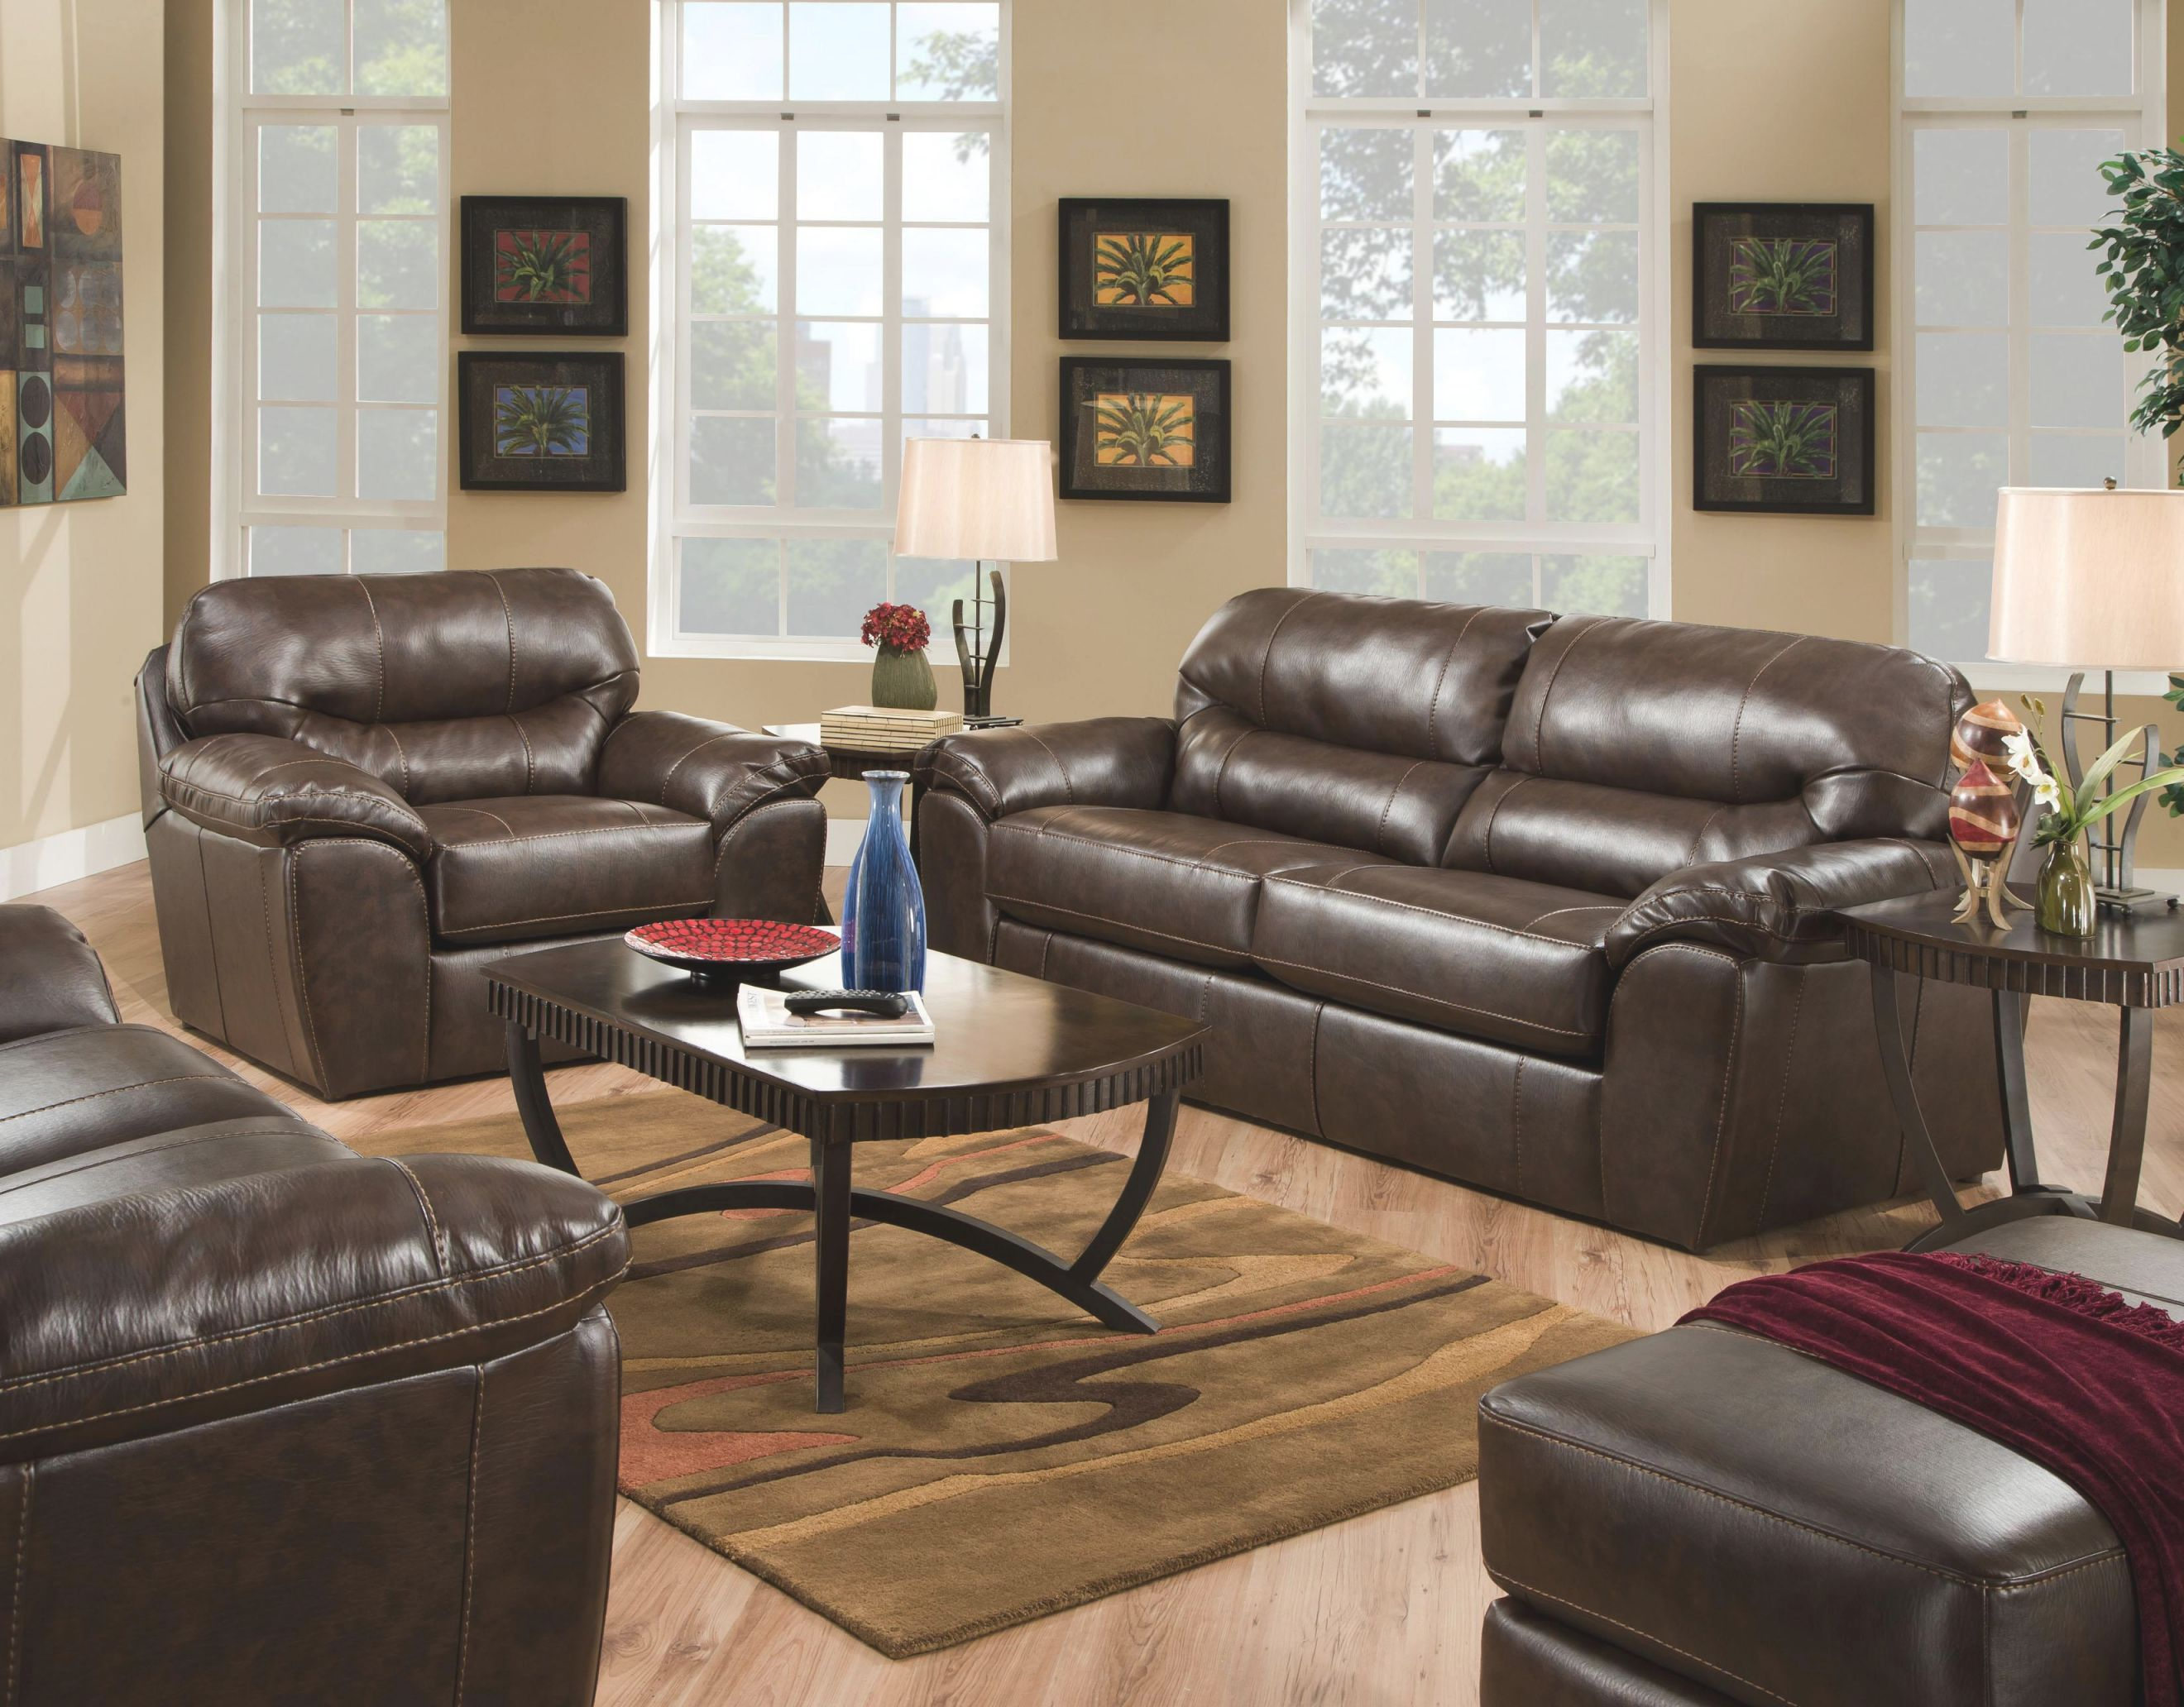 Impressing Casual Living Room Furniture Of Full Size Of intended for Casual Living Room Furniture